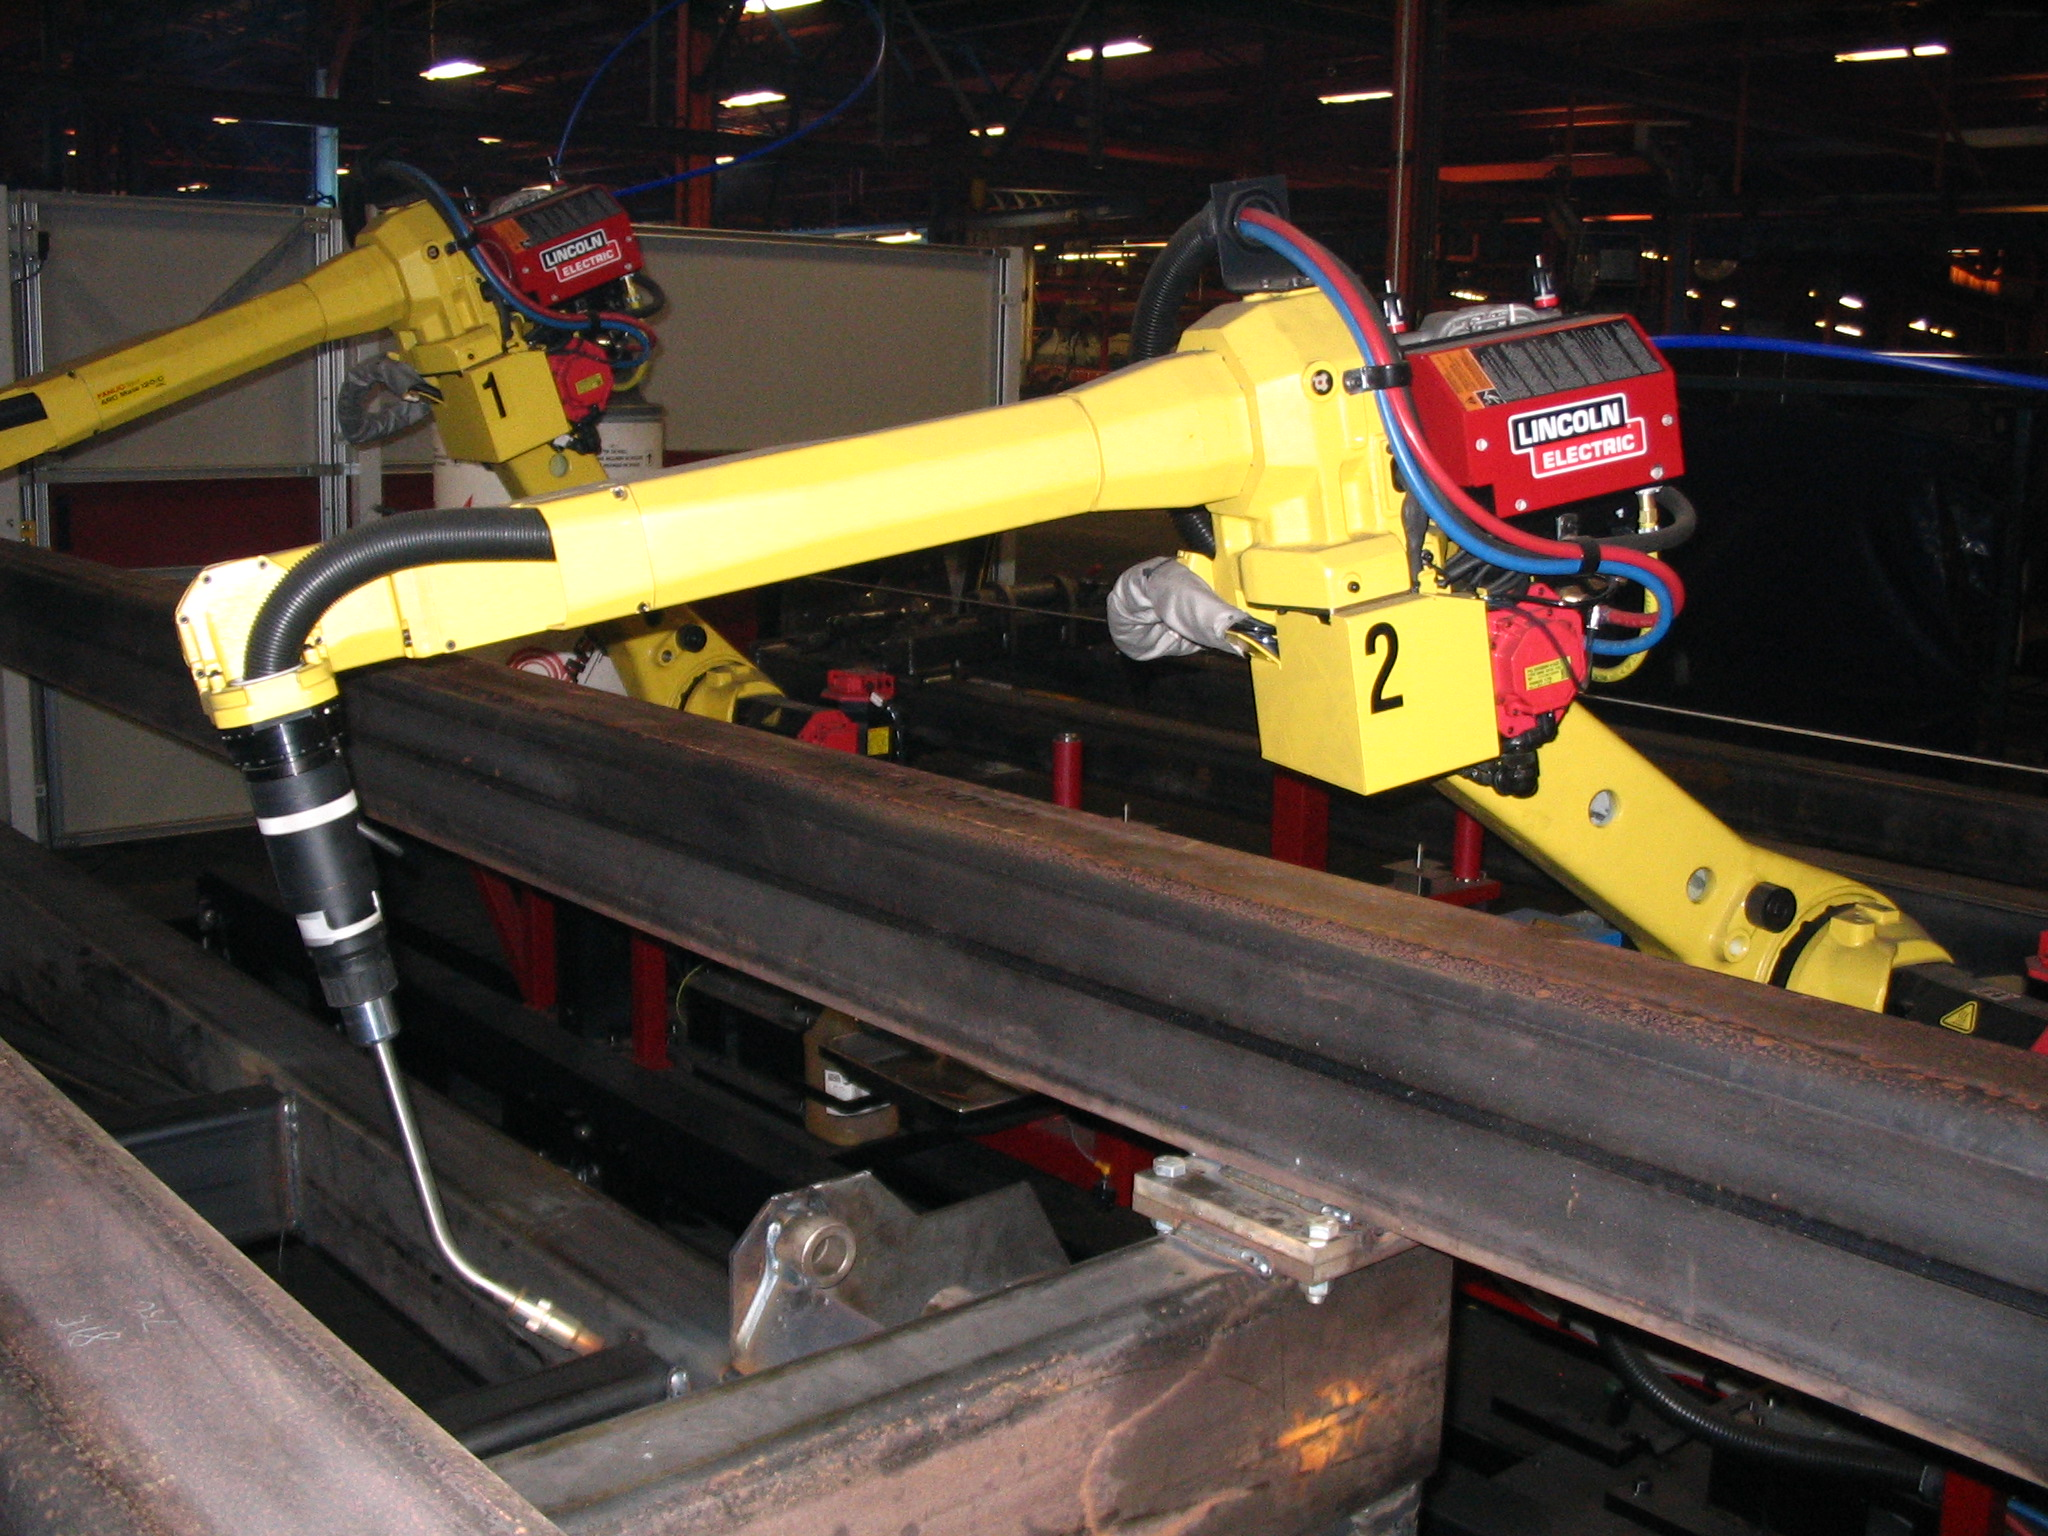 Articulated robot - Wikipedia